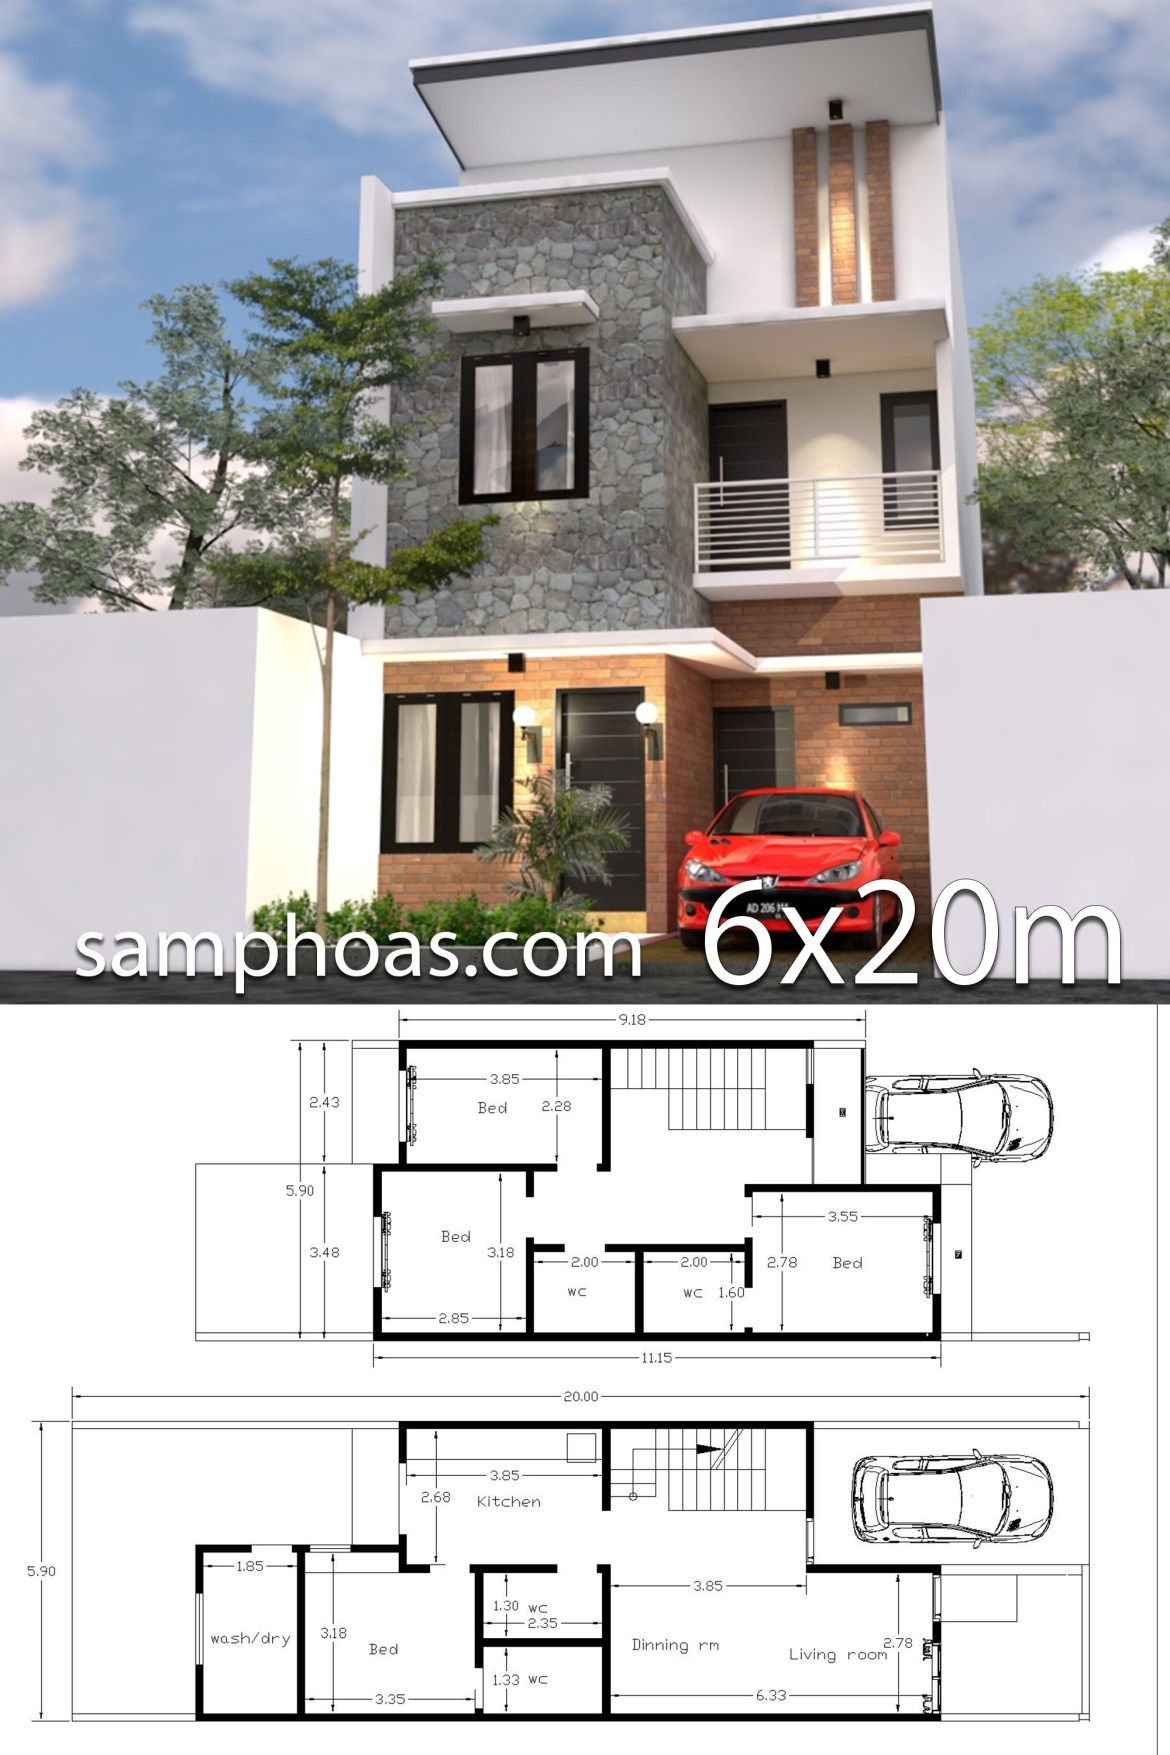 6x20m house design 3d plan with 4 bedrooms samphoas plansearch rh pinterest com